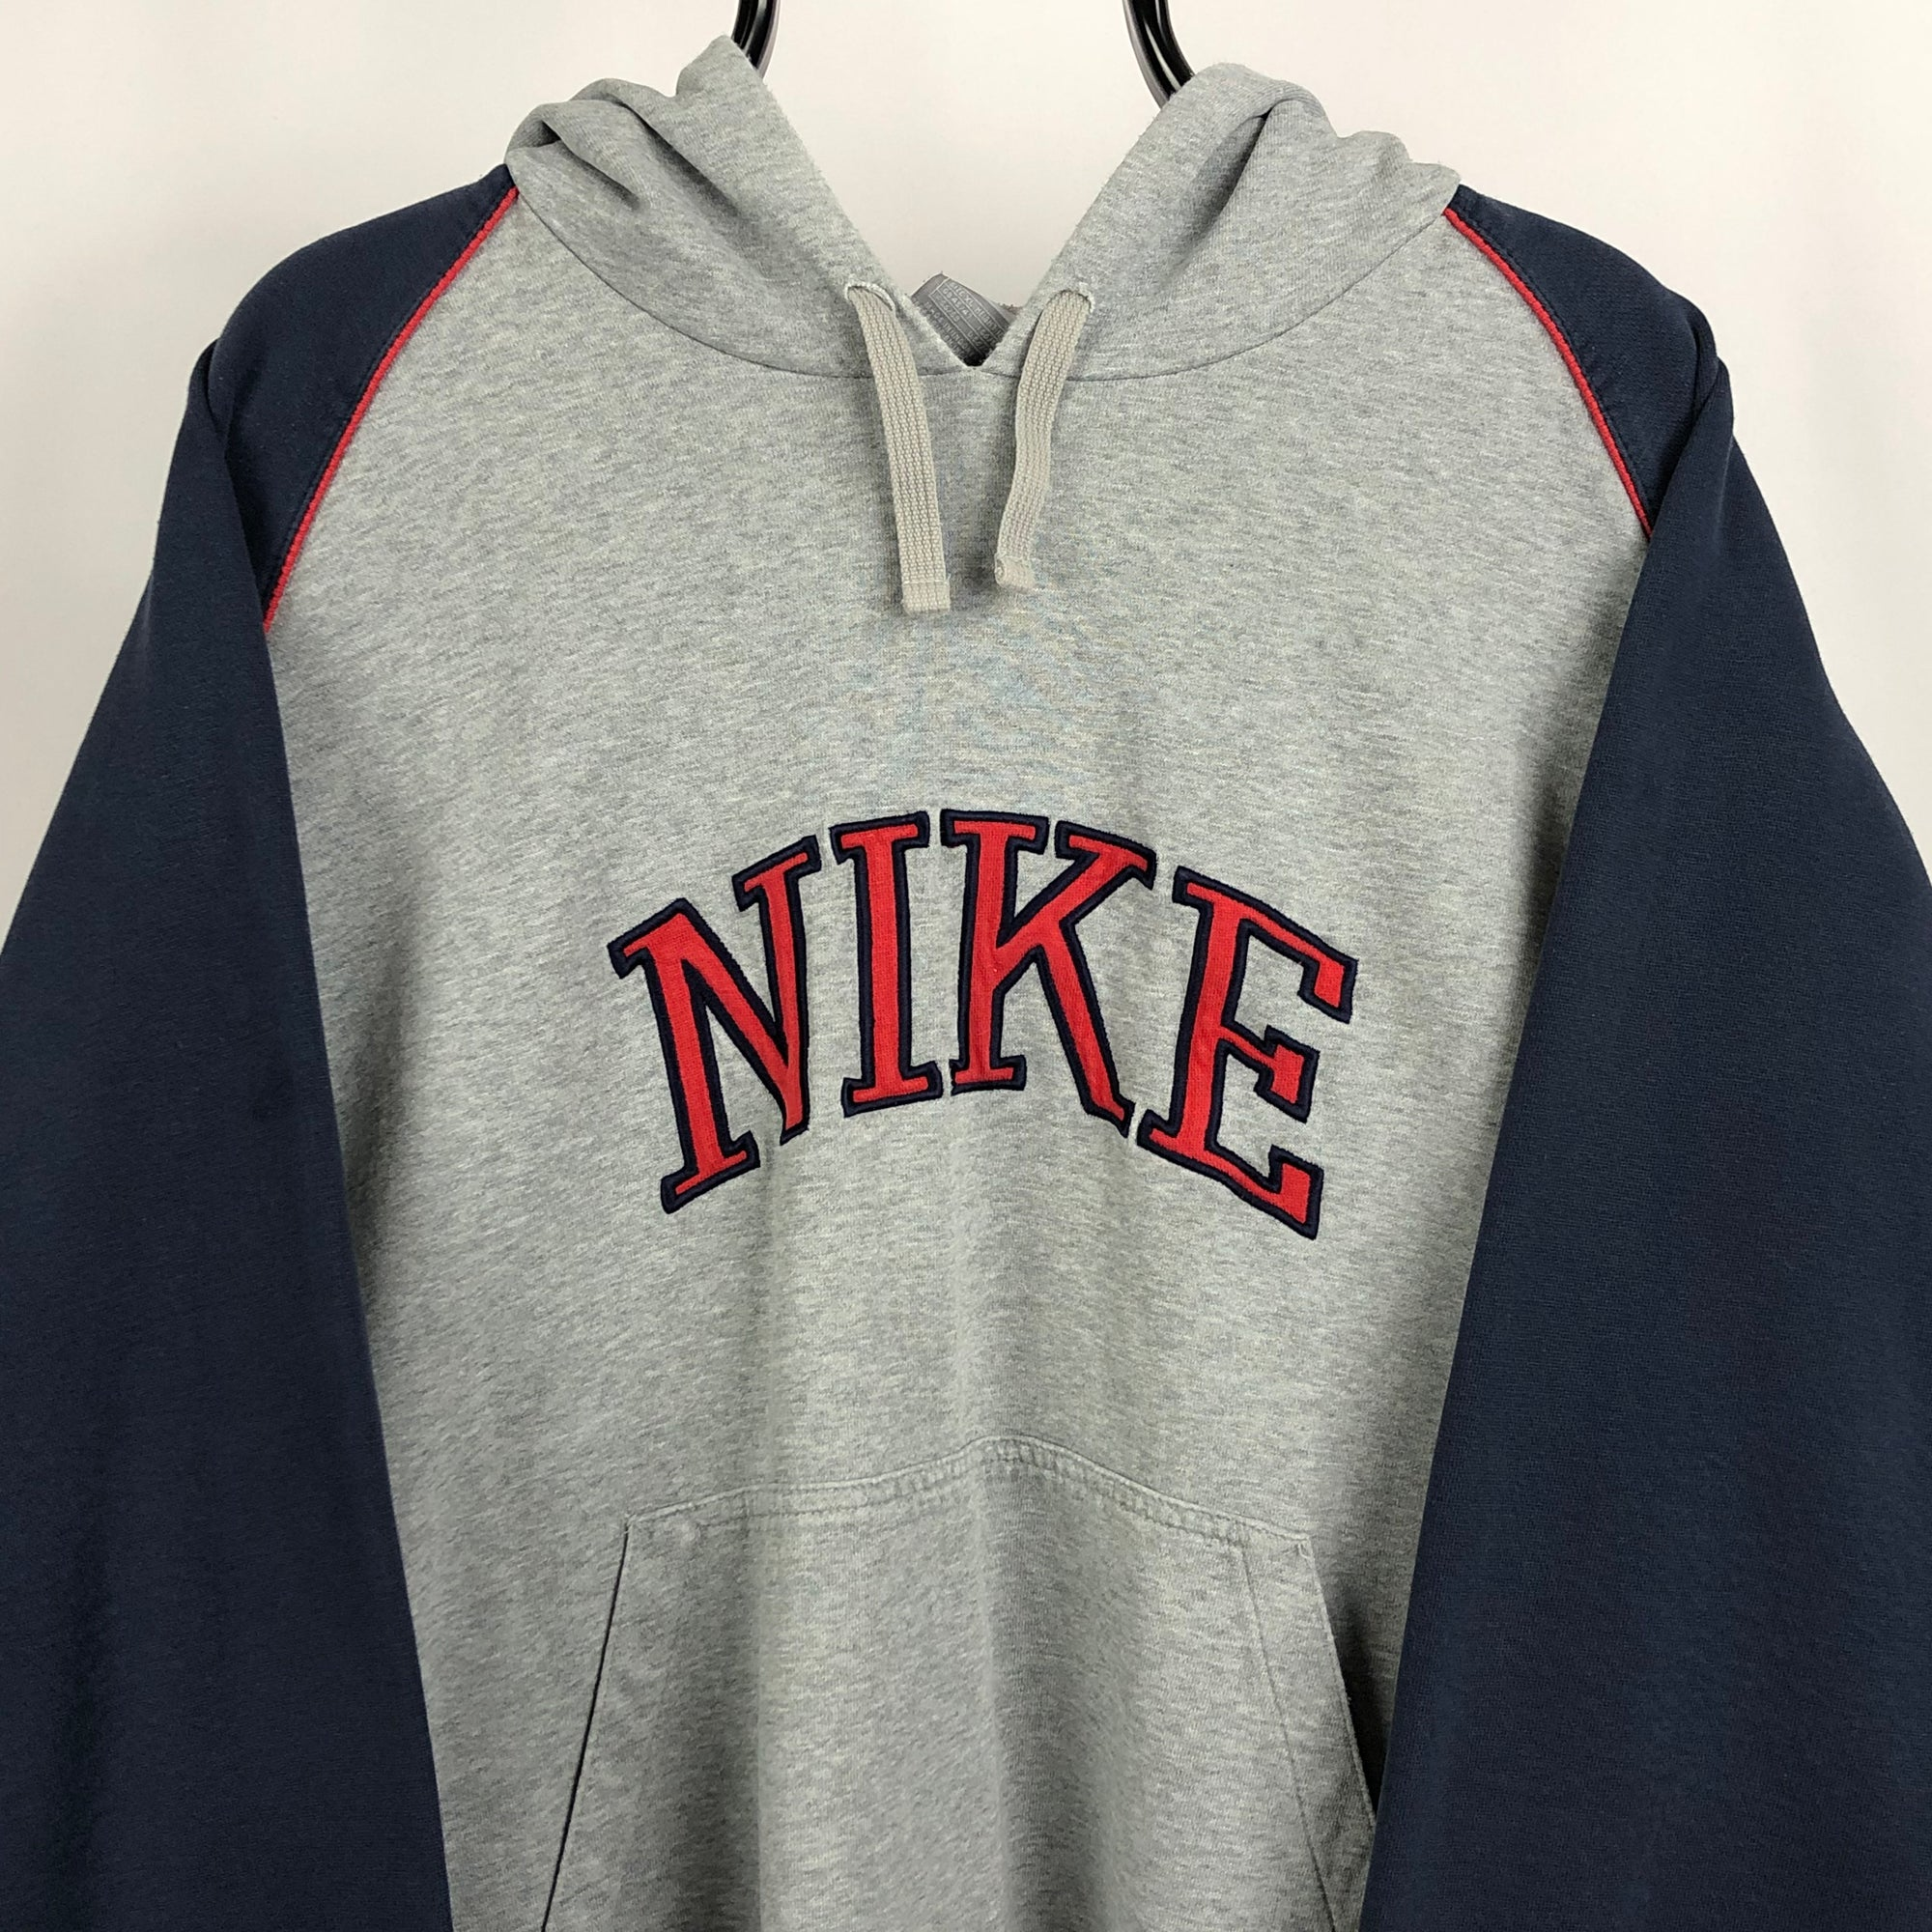 Vintage Nike Embroidered Spellout Hoodie in Grey/Navy/Red - Men's XL/Women's XXL